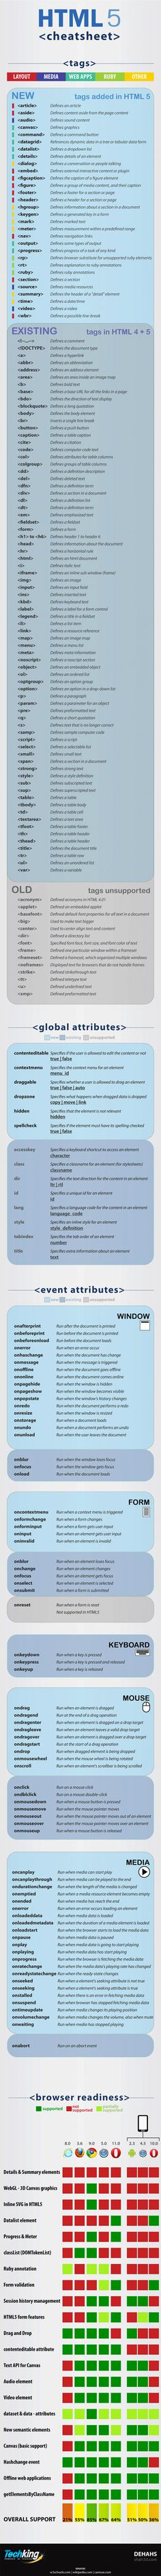 HTML 5 Cheat Sheet - for my eventual blog